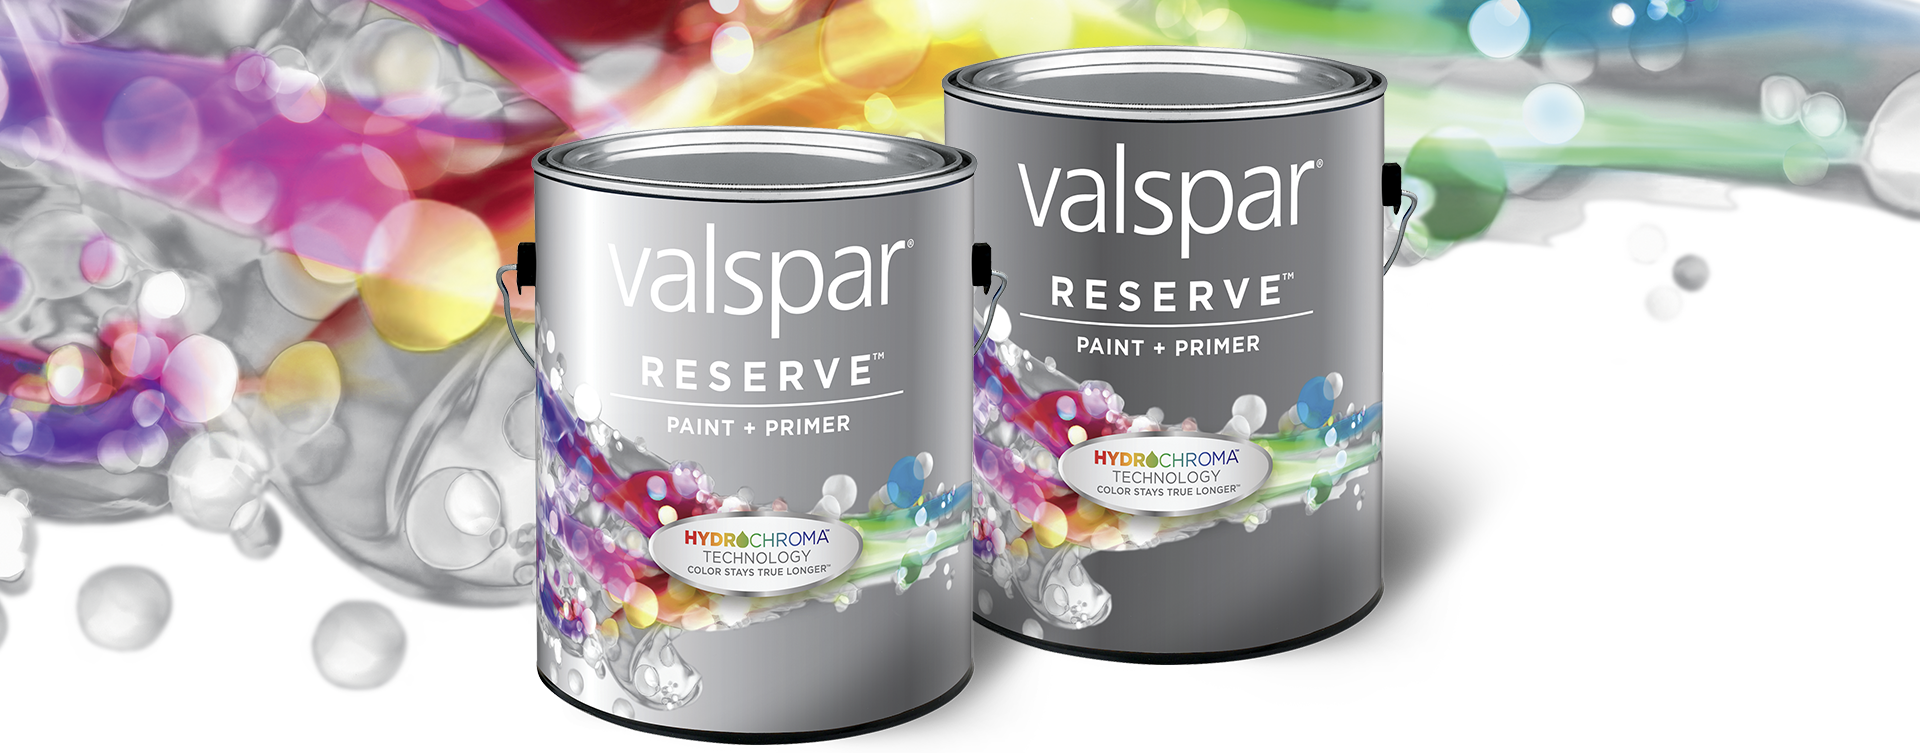 Nice Valspar Paint to Make Your Home Look Beautiful: Valspar Spray Paint Review | Valspar Paint | Valspar Paint Coupons Printable